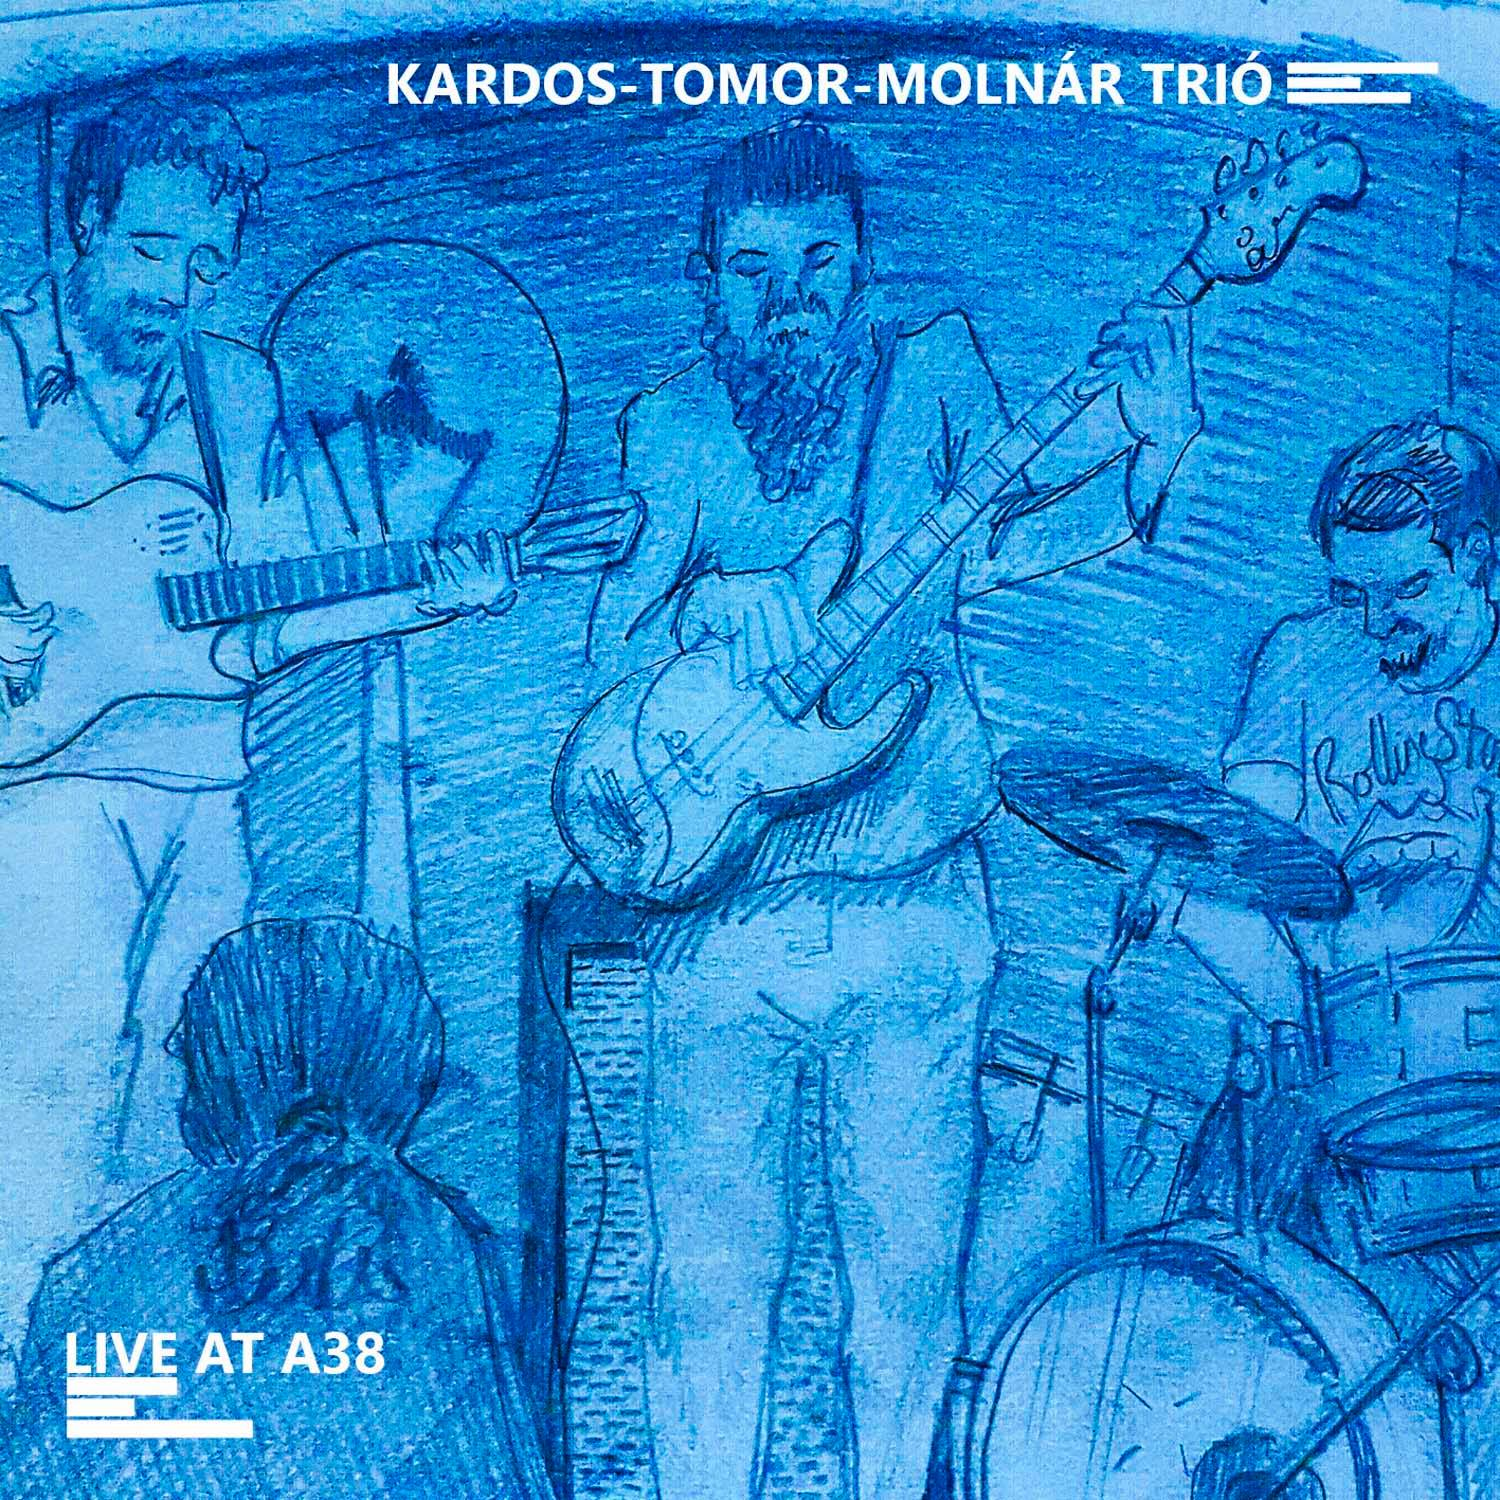 kardos-tomor-molnar-trio_live_at_a38_front